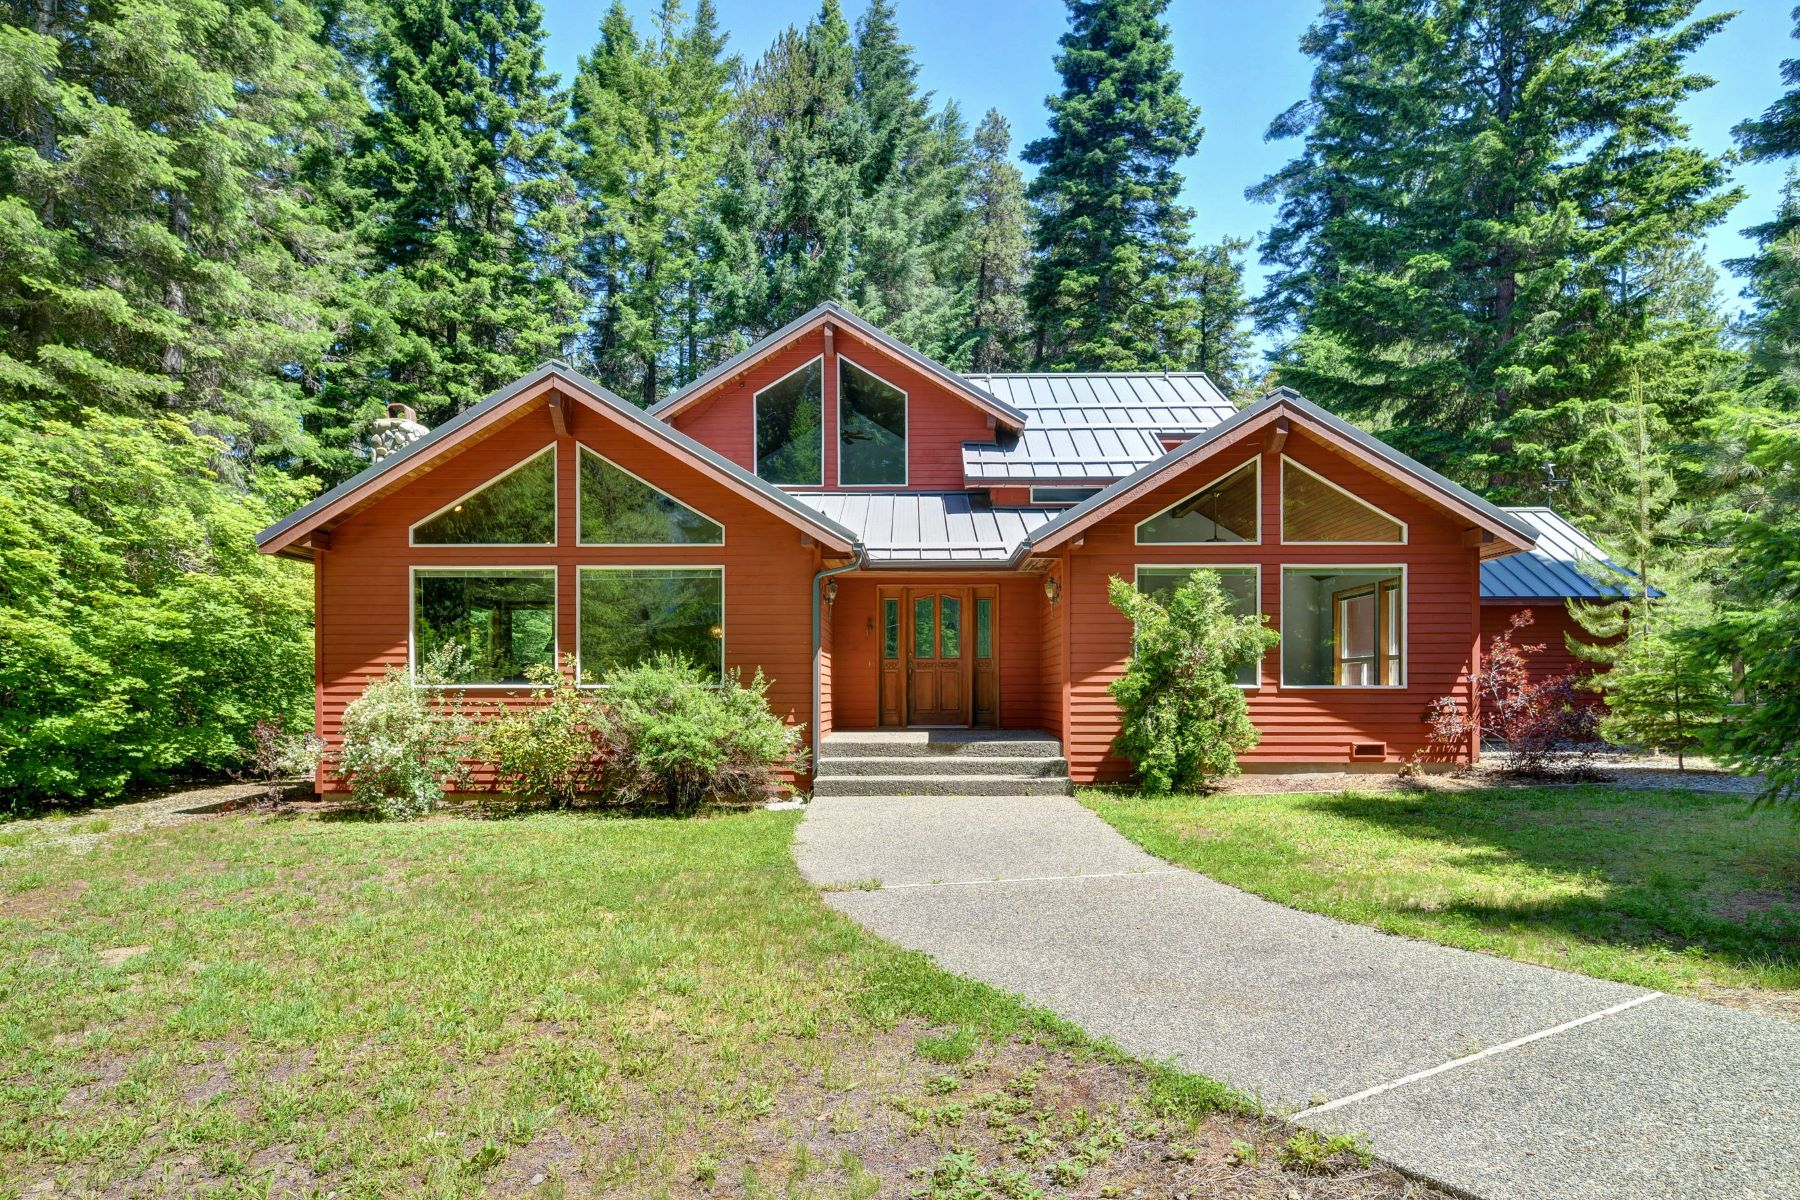 Single Family Homes for Sale at 680 Nelson Creek Road, Cle Elum, WA 98922 680 Nelson Creek Rd Cle Elum, Washington 98922 United States